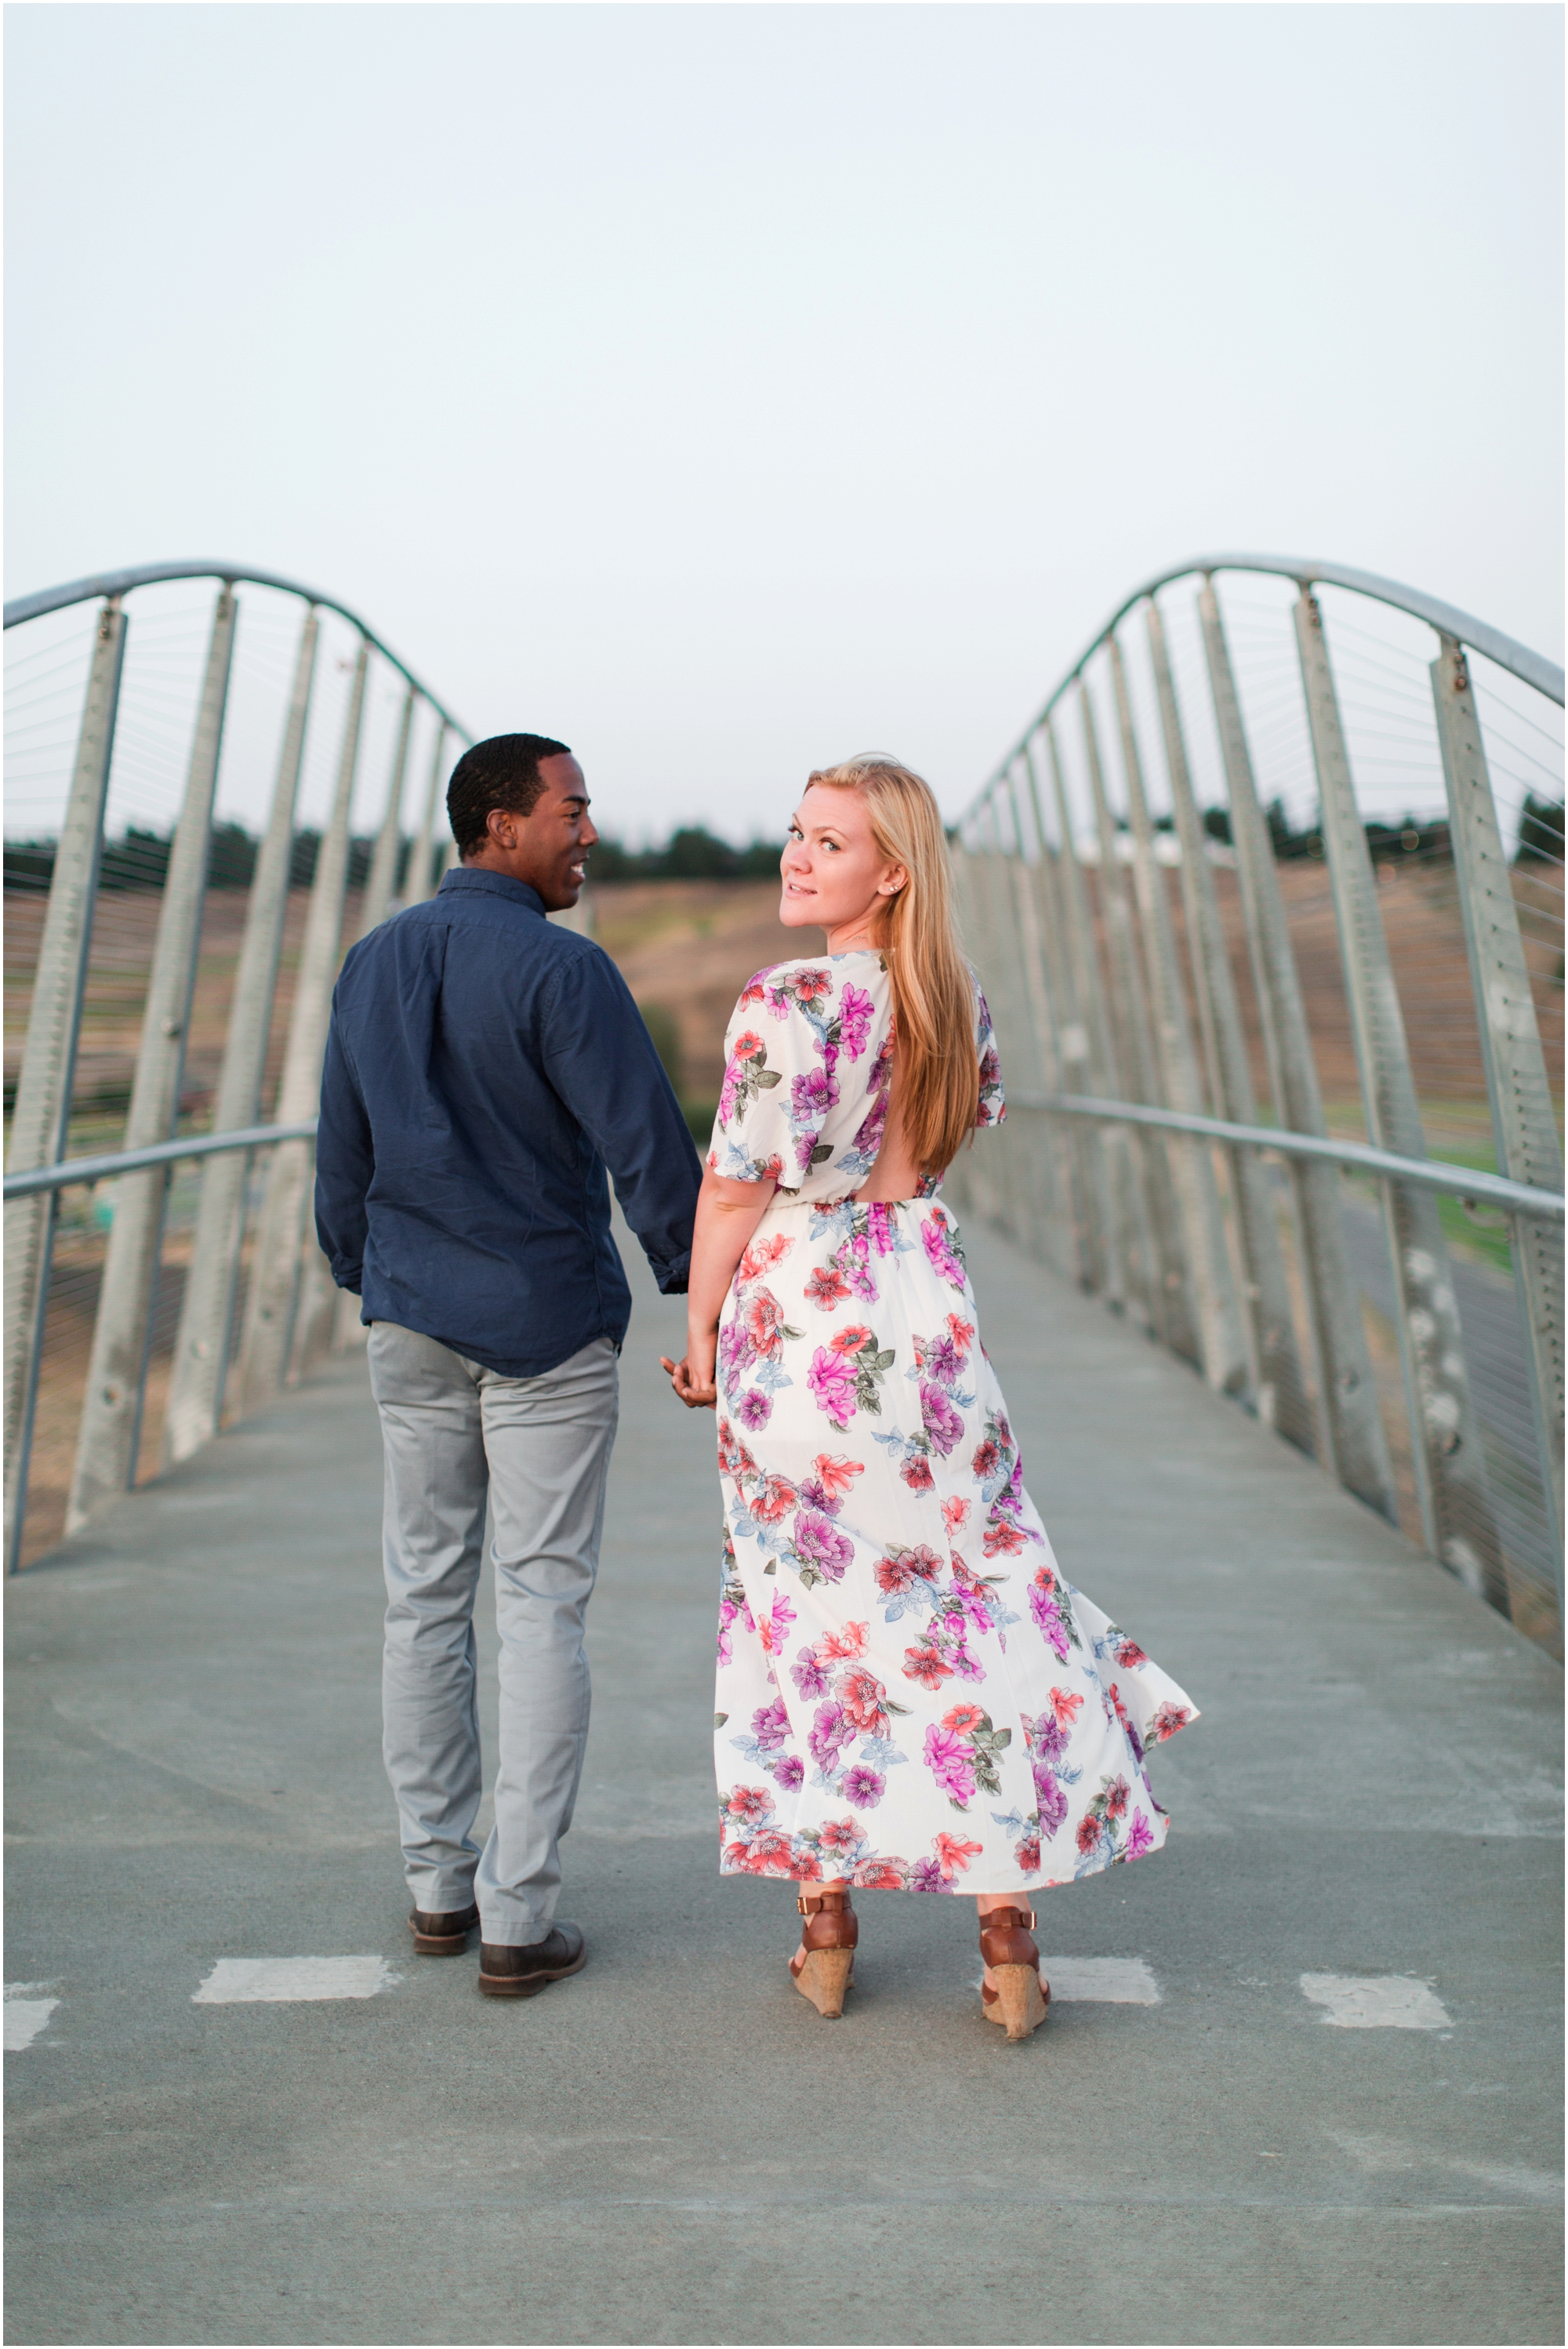 Chambers Bay engagement shoot in Tacoma, WA. Photos by Briana Calderon Photography based in the greater Seattle Area._1281.jpg